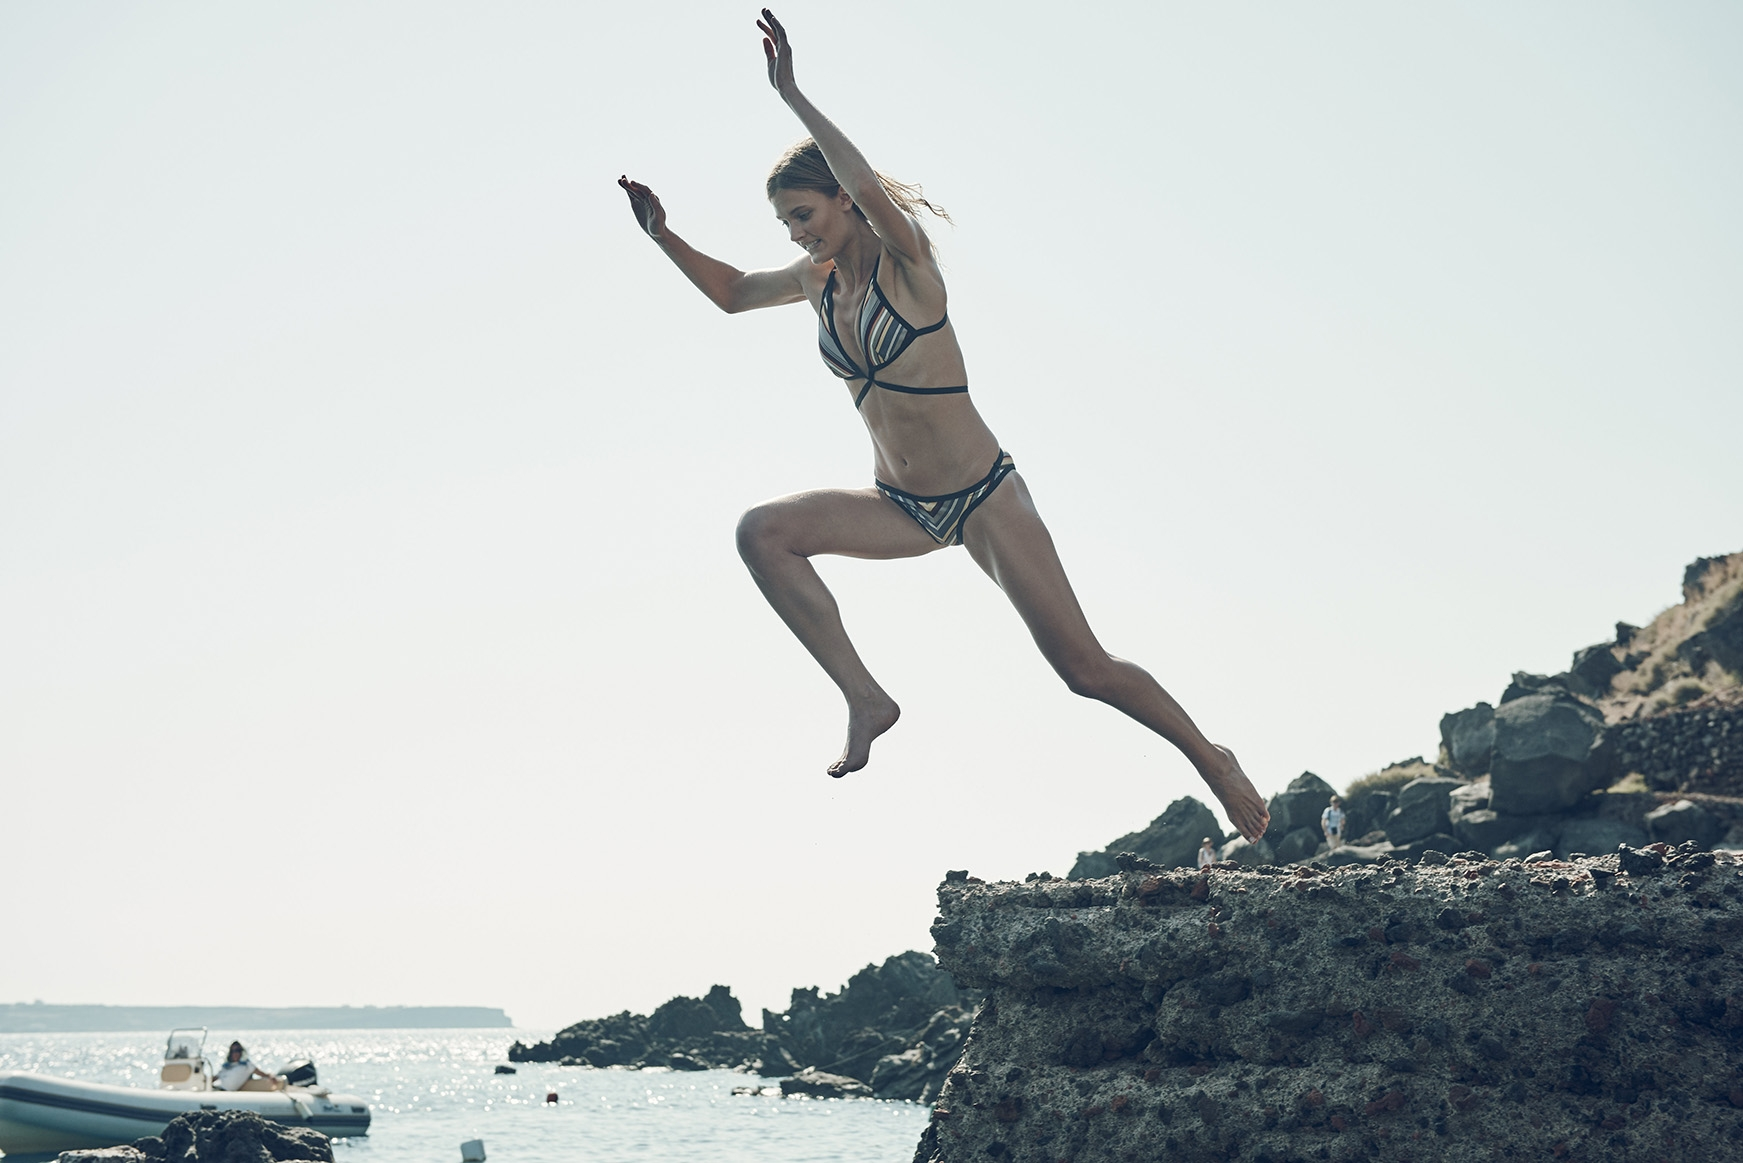 A behind the scenes shot of our model jumping off a rock and into the water